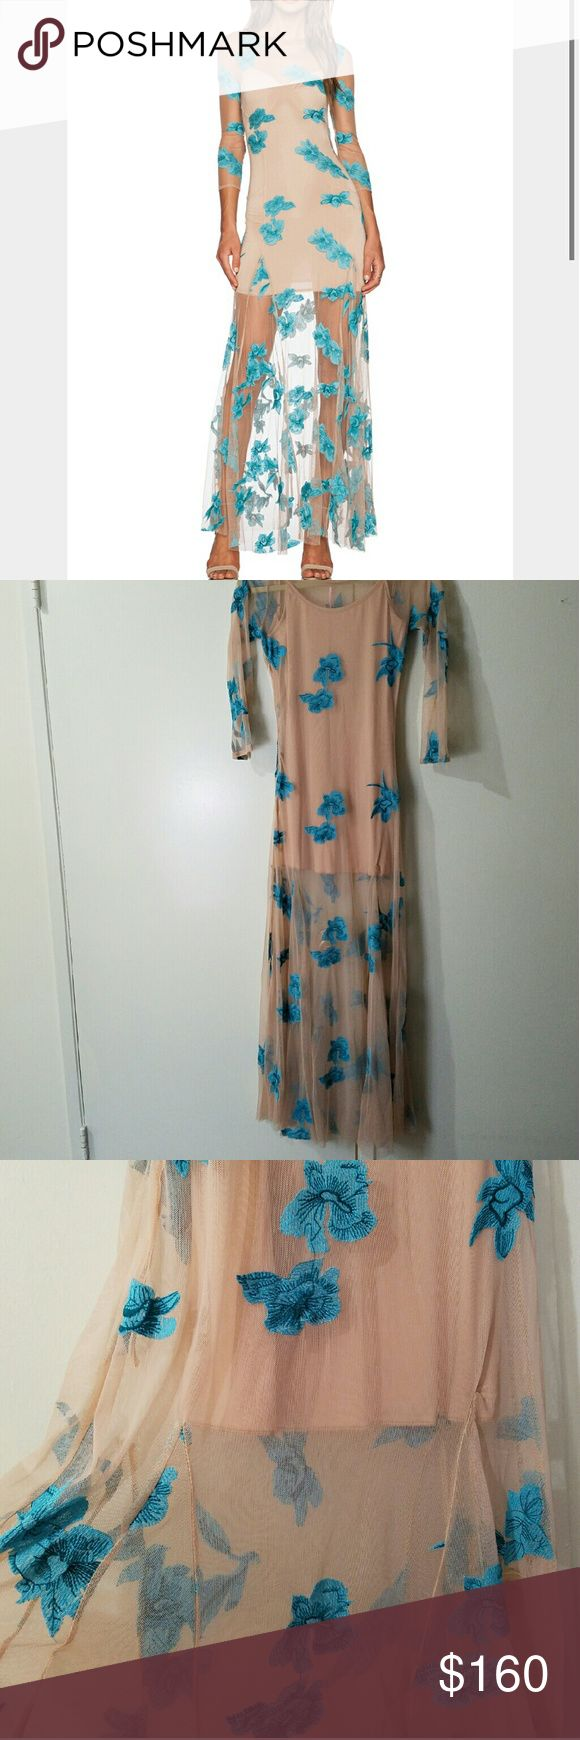 FINAL SALE 🌹Gorgeous blue orchid maxi dress FINAL SALE. Gorgeous dress very similar to the one the model wears in FL&L. This dress is sold out practically everywhere and especially in this size. It says it's a L but can easily fit a M. Runs slightly small. Perfect for photo shoots and special events. Price is firm. Not sure I want to sell this even though it is not FL&L because it's stunning in person and the quality is great with a lot of stretch. FL&L tagged for exposure. 💕💕💕 FL&L…